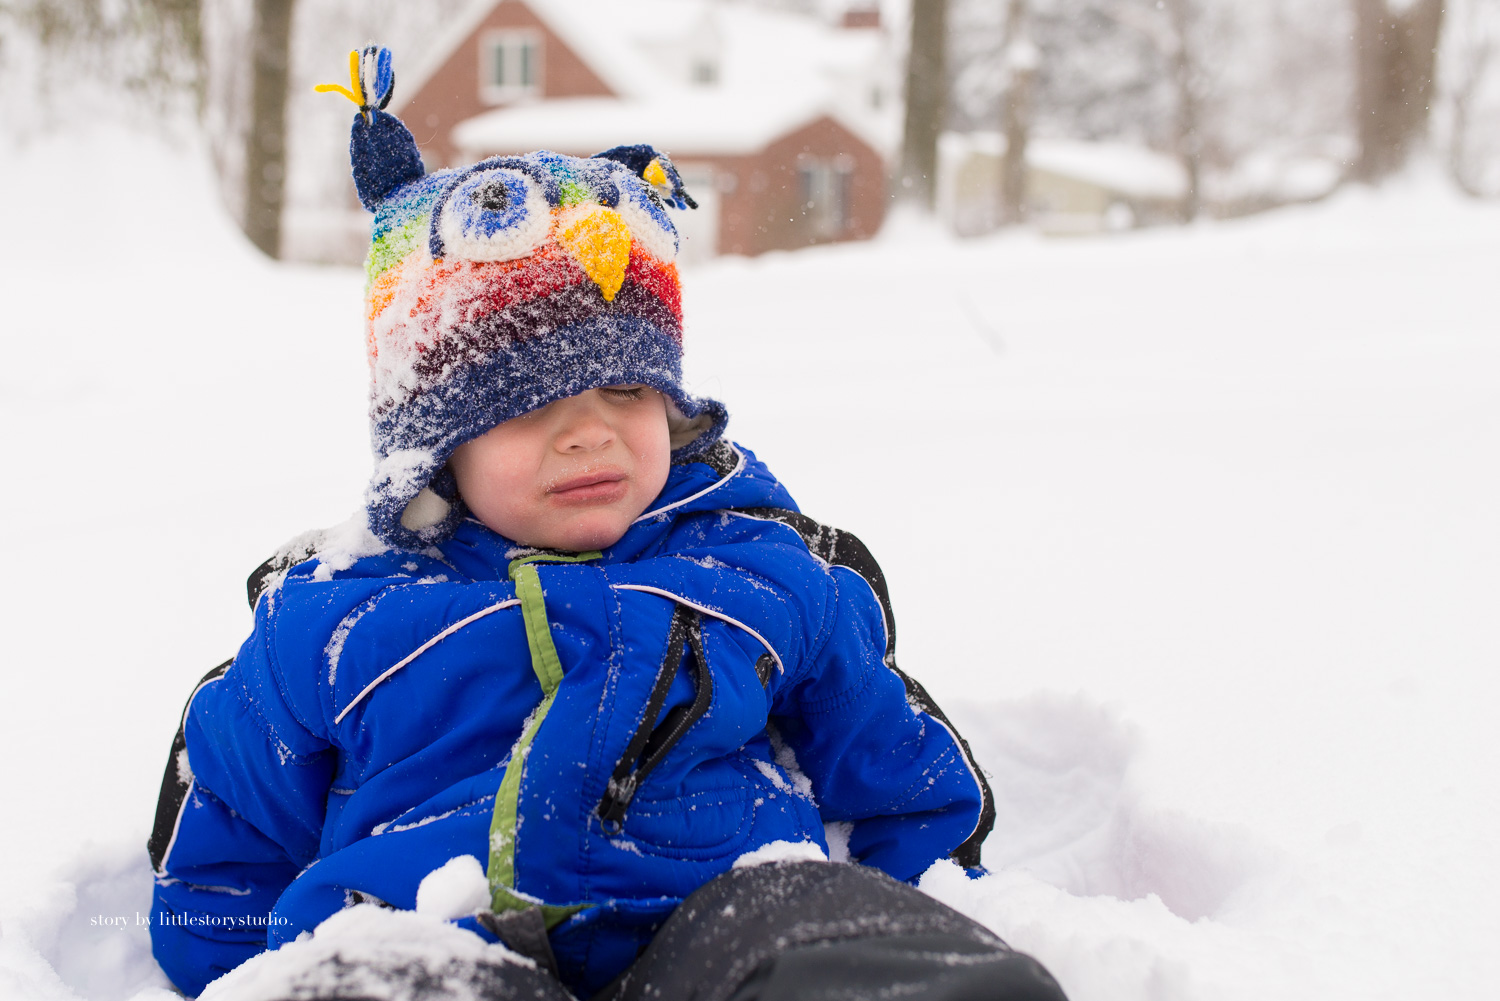 A little snowy face plant. Chalk that one up to experience. It's a rite of passage, yes?